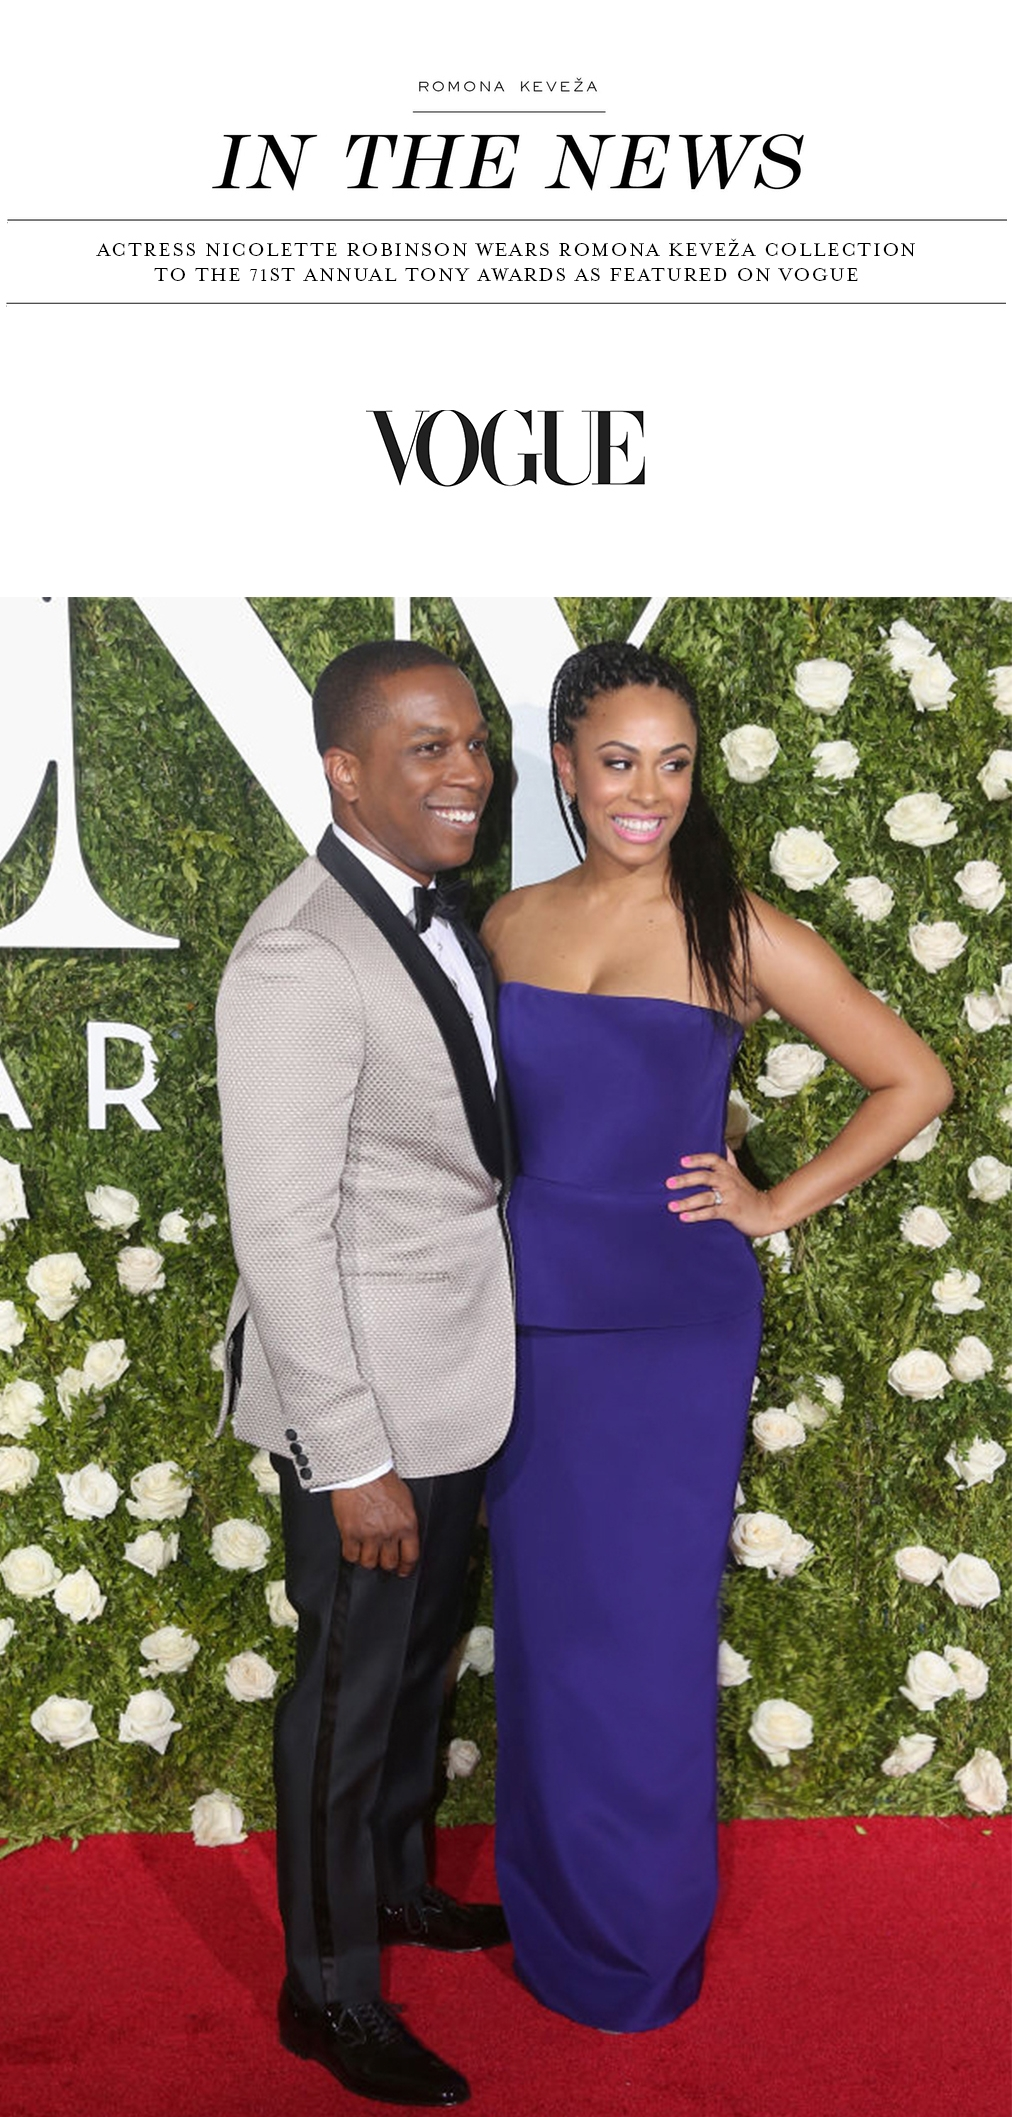 Nicolette Robinson wears Romona Keveza Collection to the 71st Annual Tony Awards as featured on VOGUE